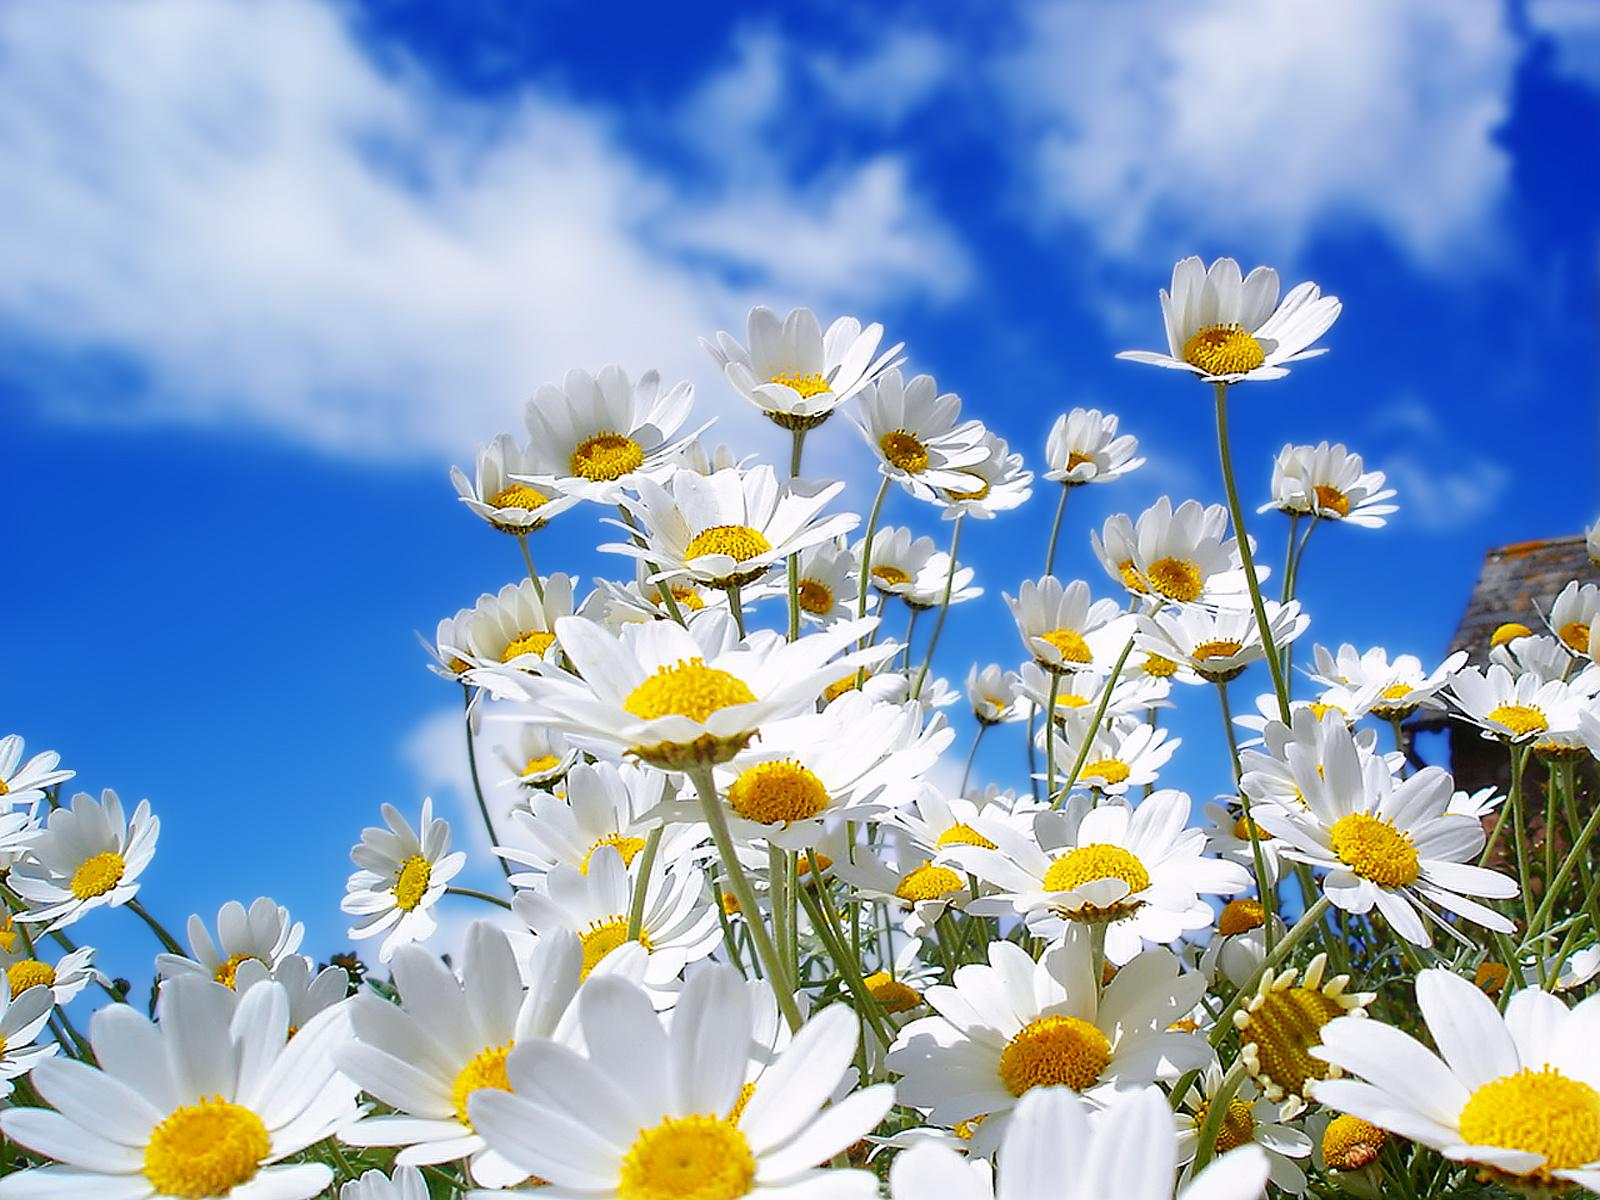 Beautiful Nature Pictures: Spring Daisy Wallpaper